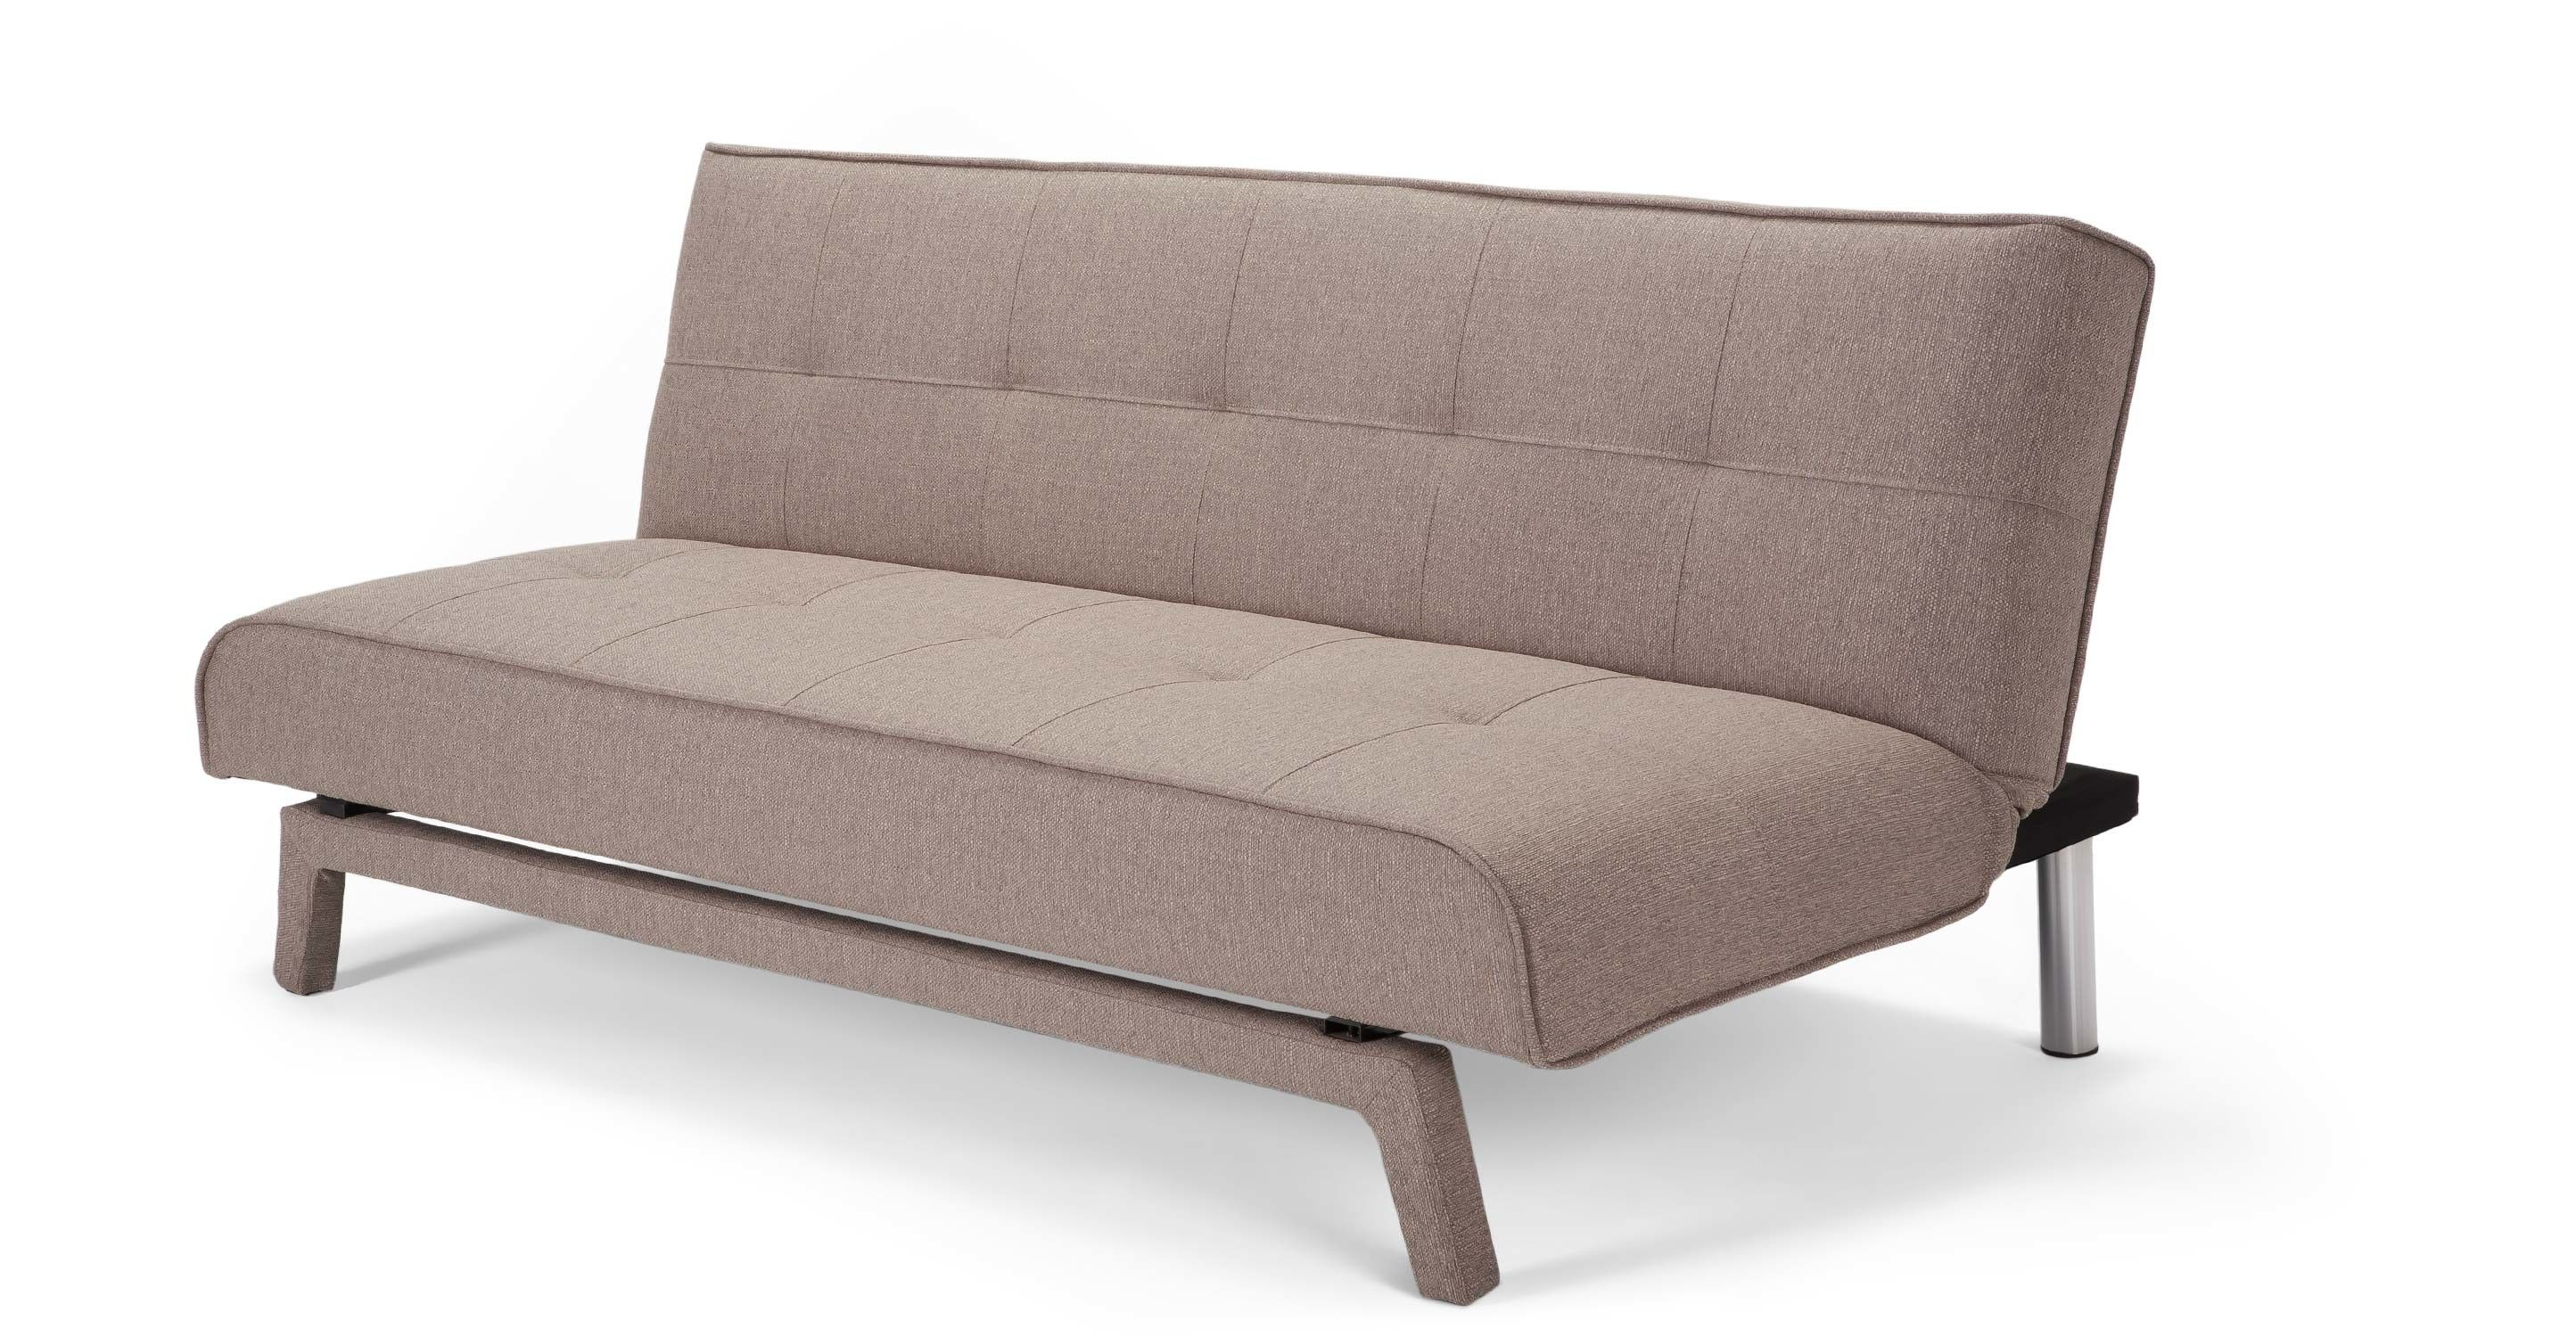 Yoko Sofa Bed In Tawny Brown Made Com Sofa Bed Double Sofa Bed Sofas For Small Spaces